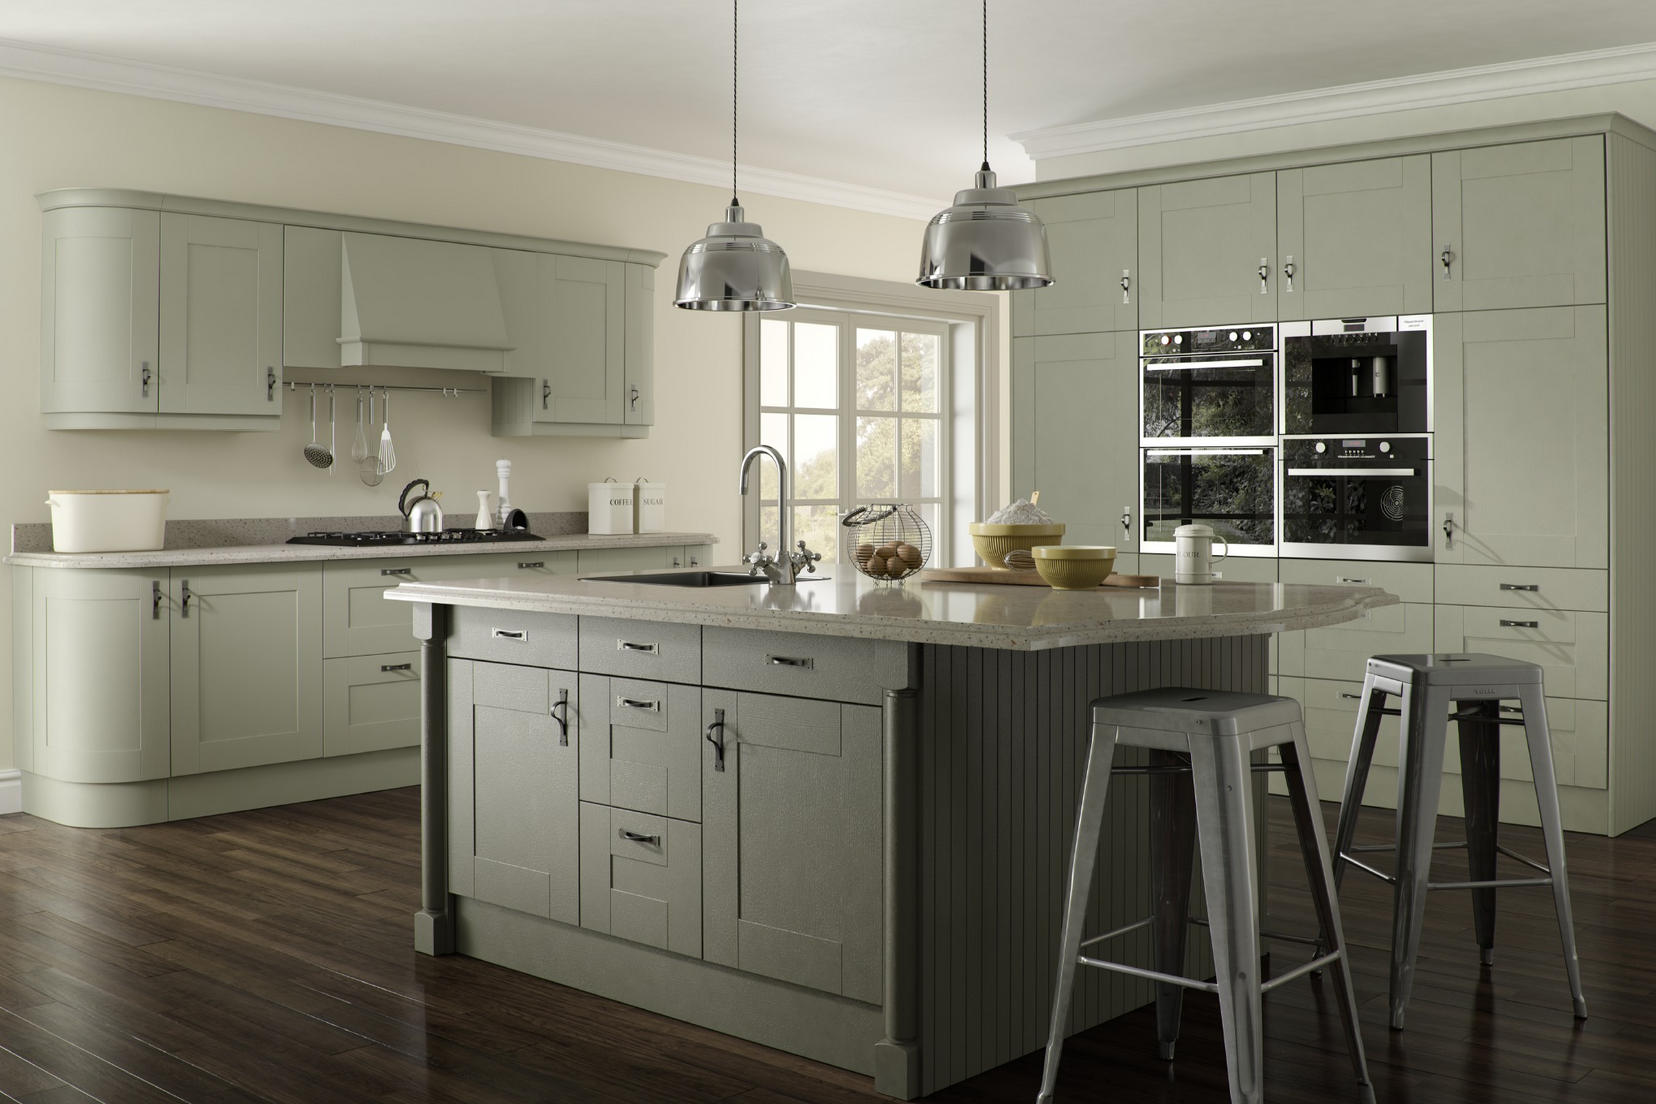 Malham sage olive shaker kitchen proline cabinets ltd for Shaker kitchen cabinets